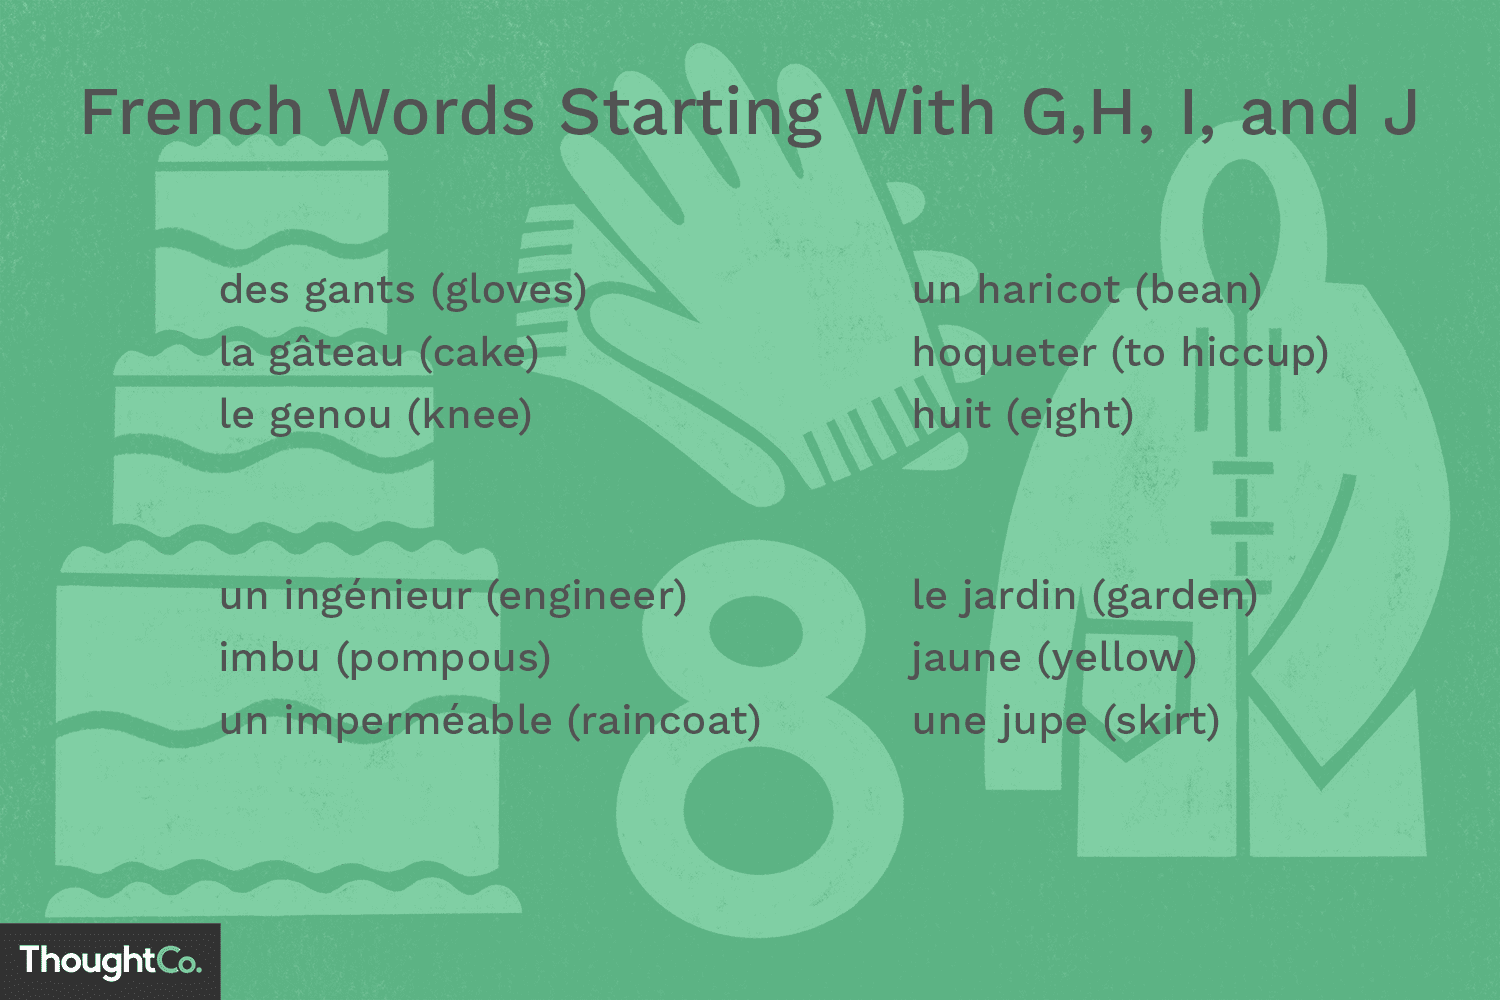 French Words Starting With G, H, I and J